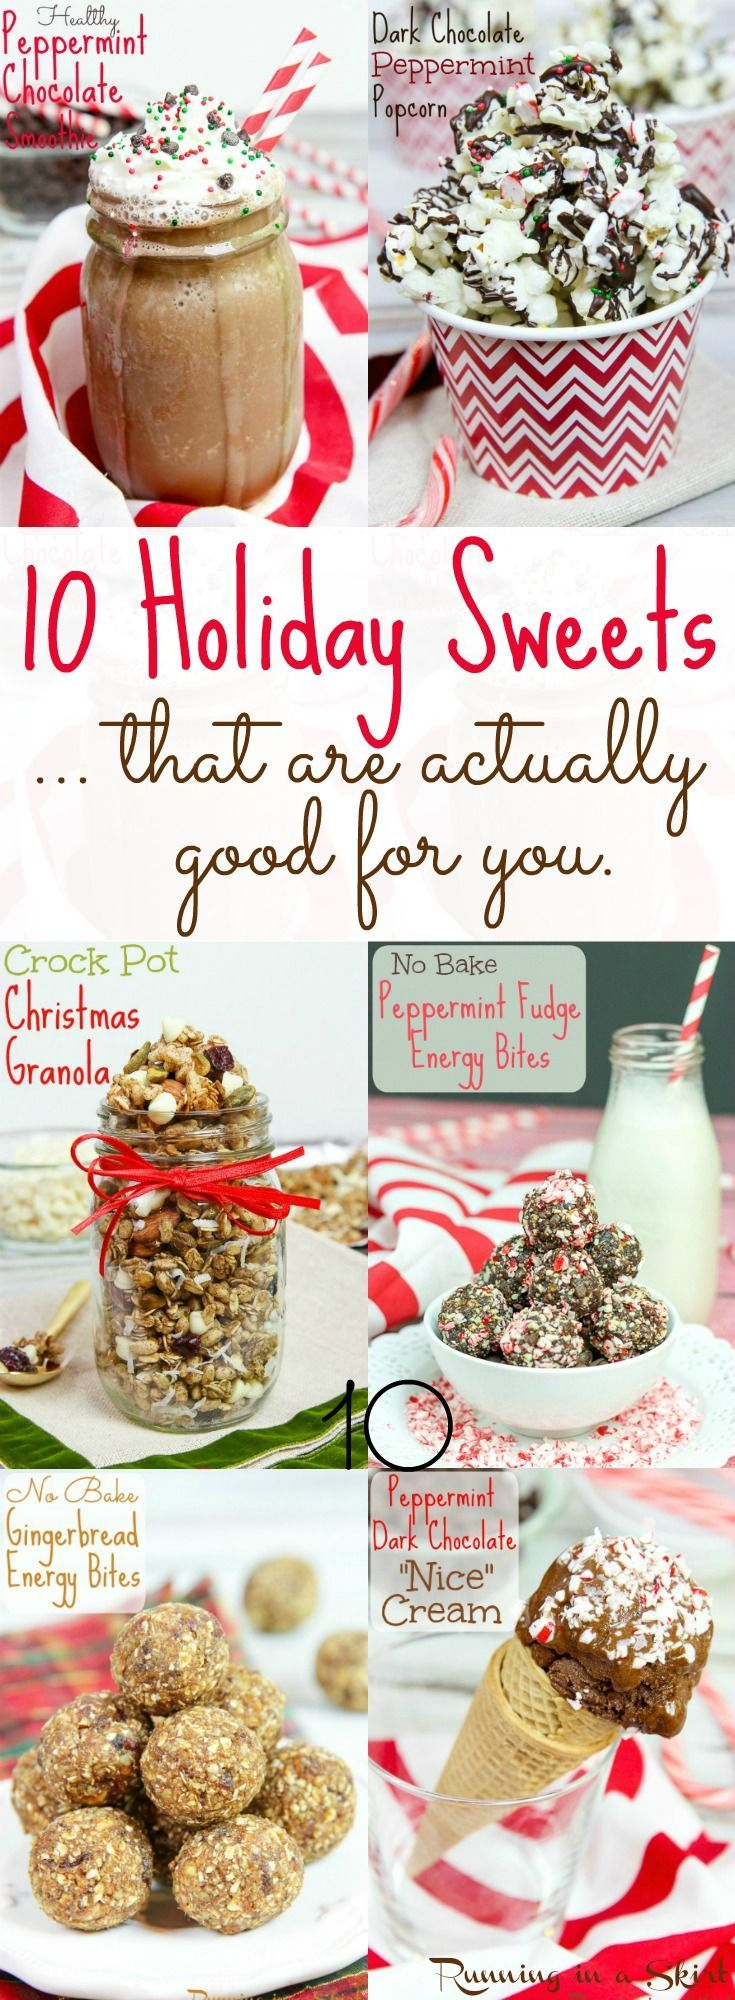 10 Healthy Holiday Sweets for Christmas... that are actually good for you!  Clean eating, easy, simple, recipes for treats, snacks or a gift.  Even some Crock Pot ideas! / Running in a Skirt